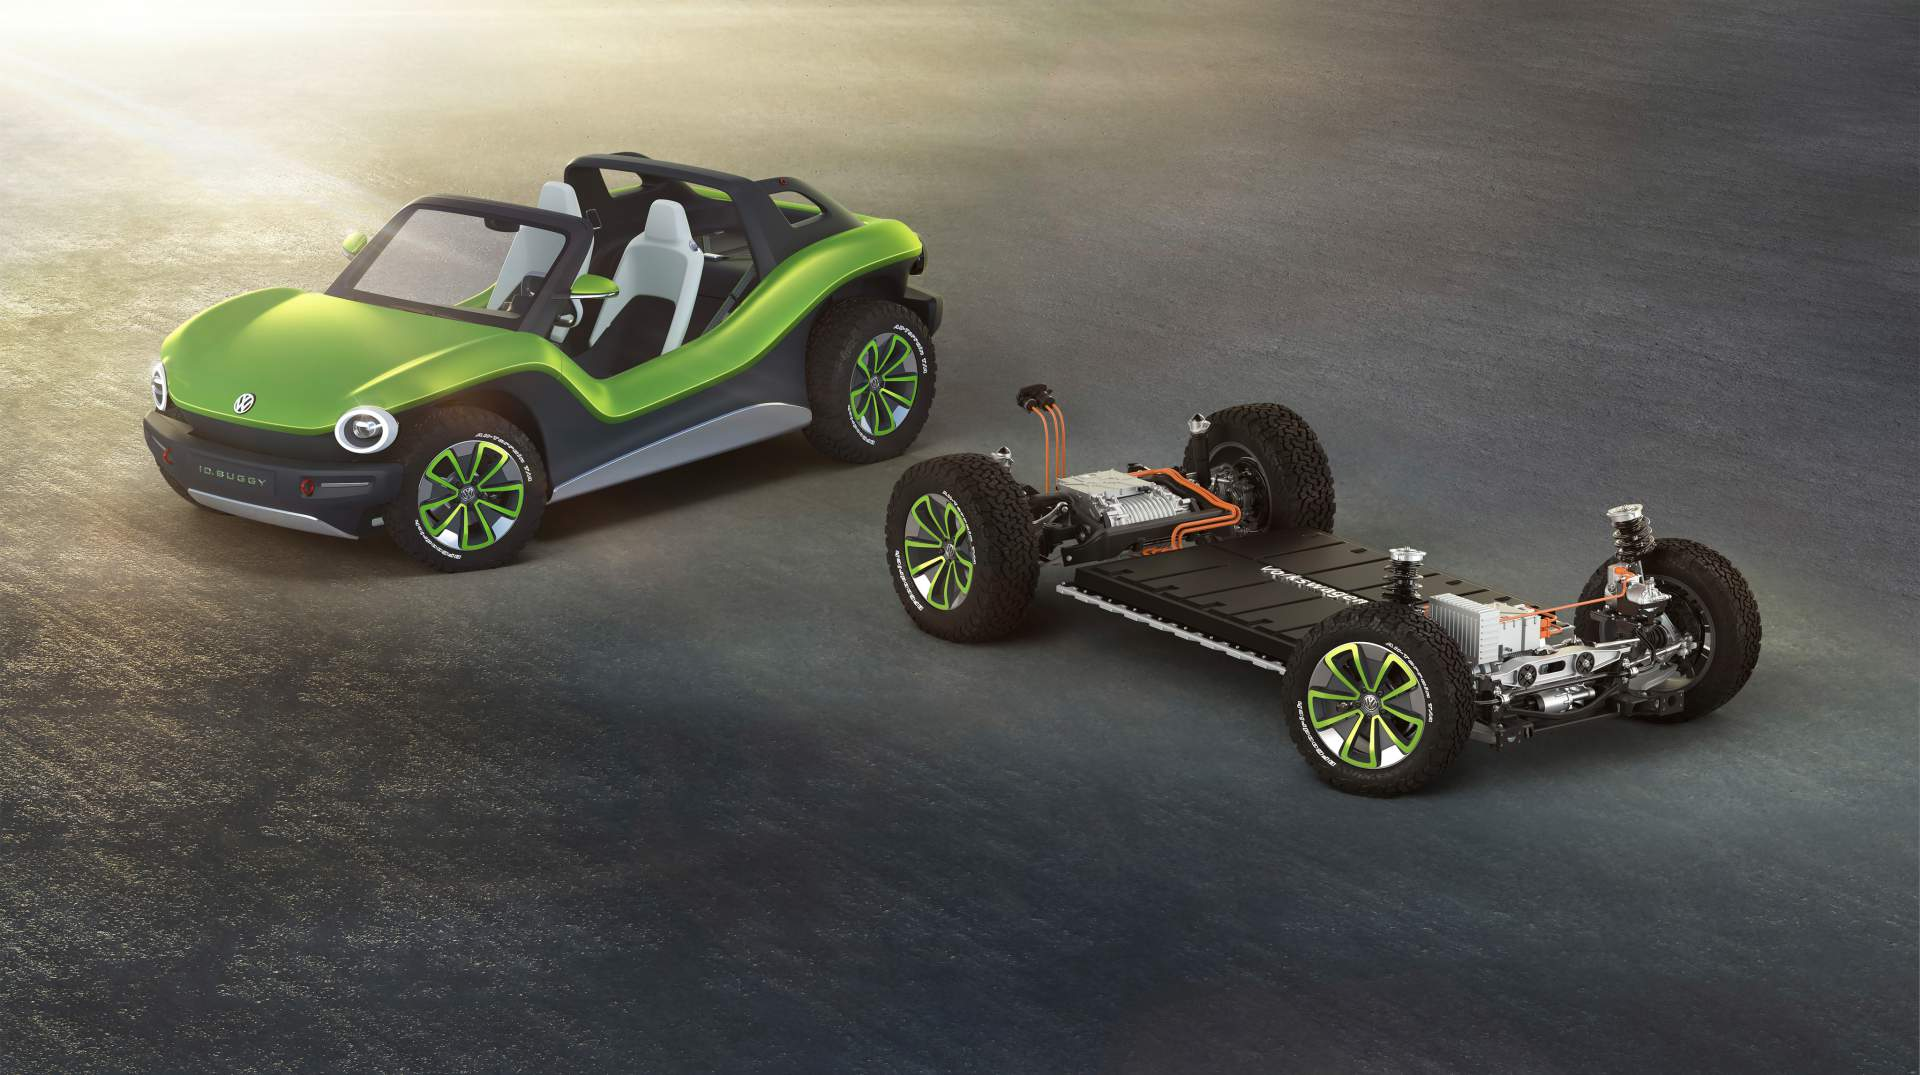 2a64a780-vw-id-buggy-and-meb-platform